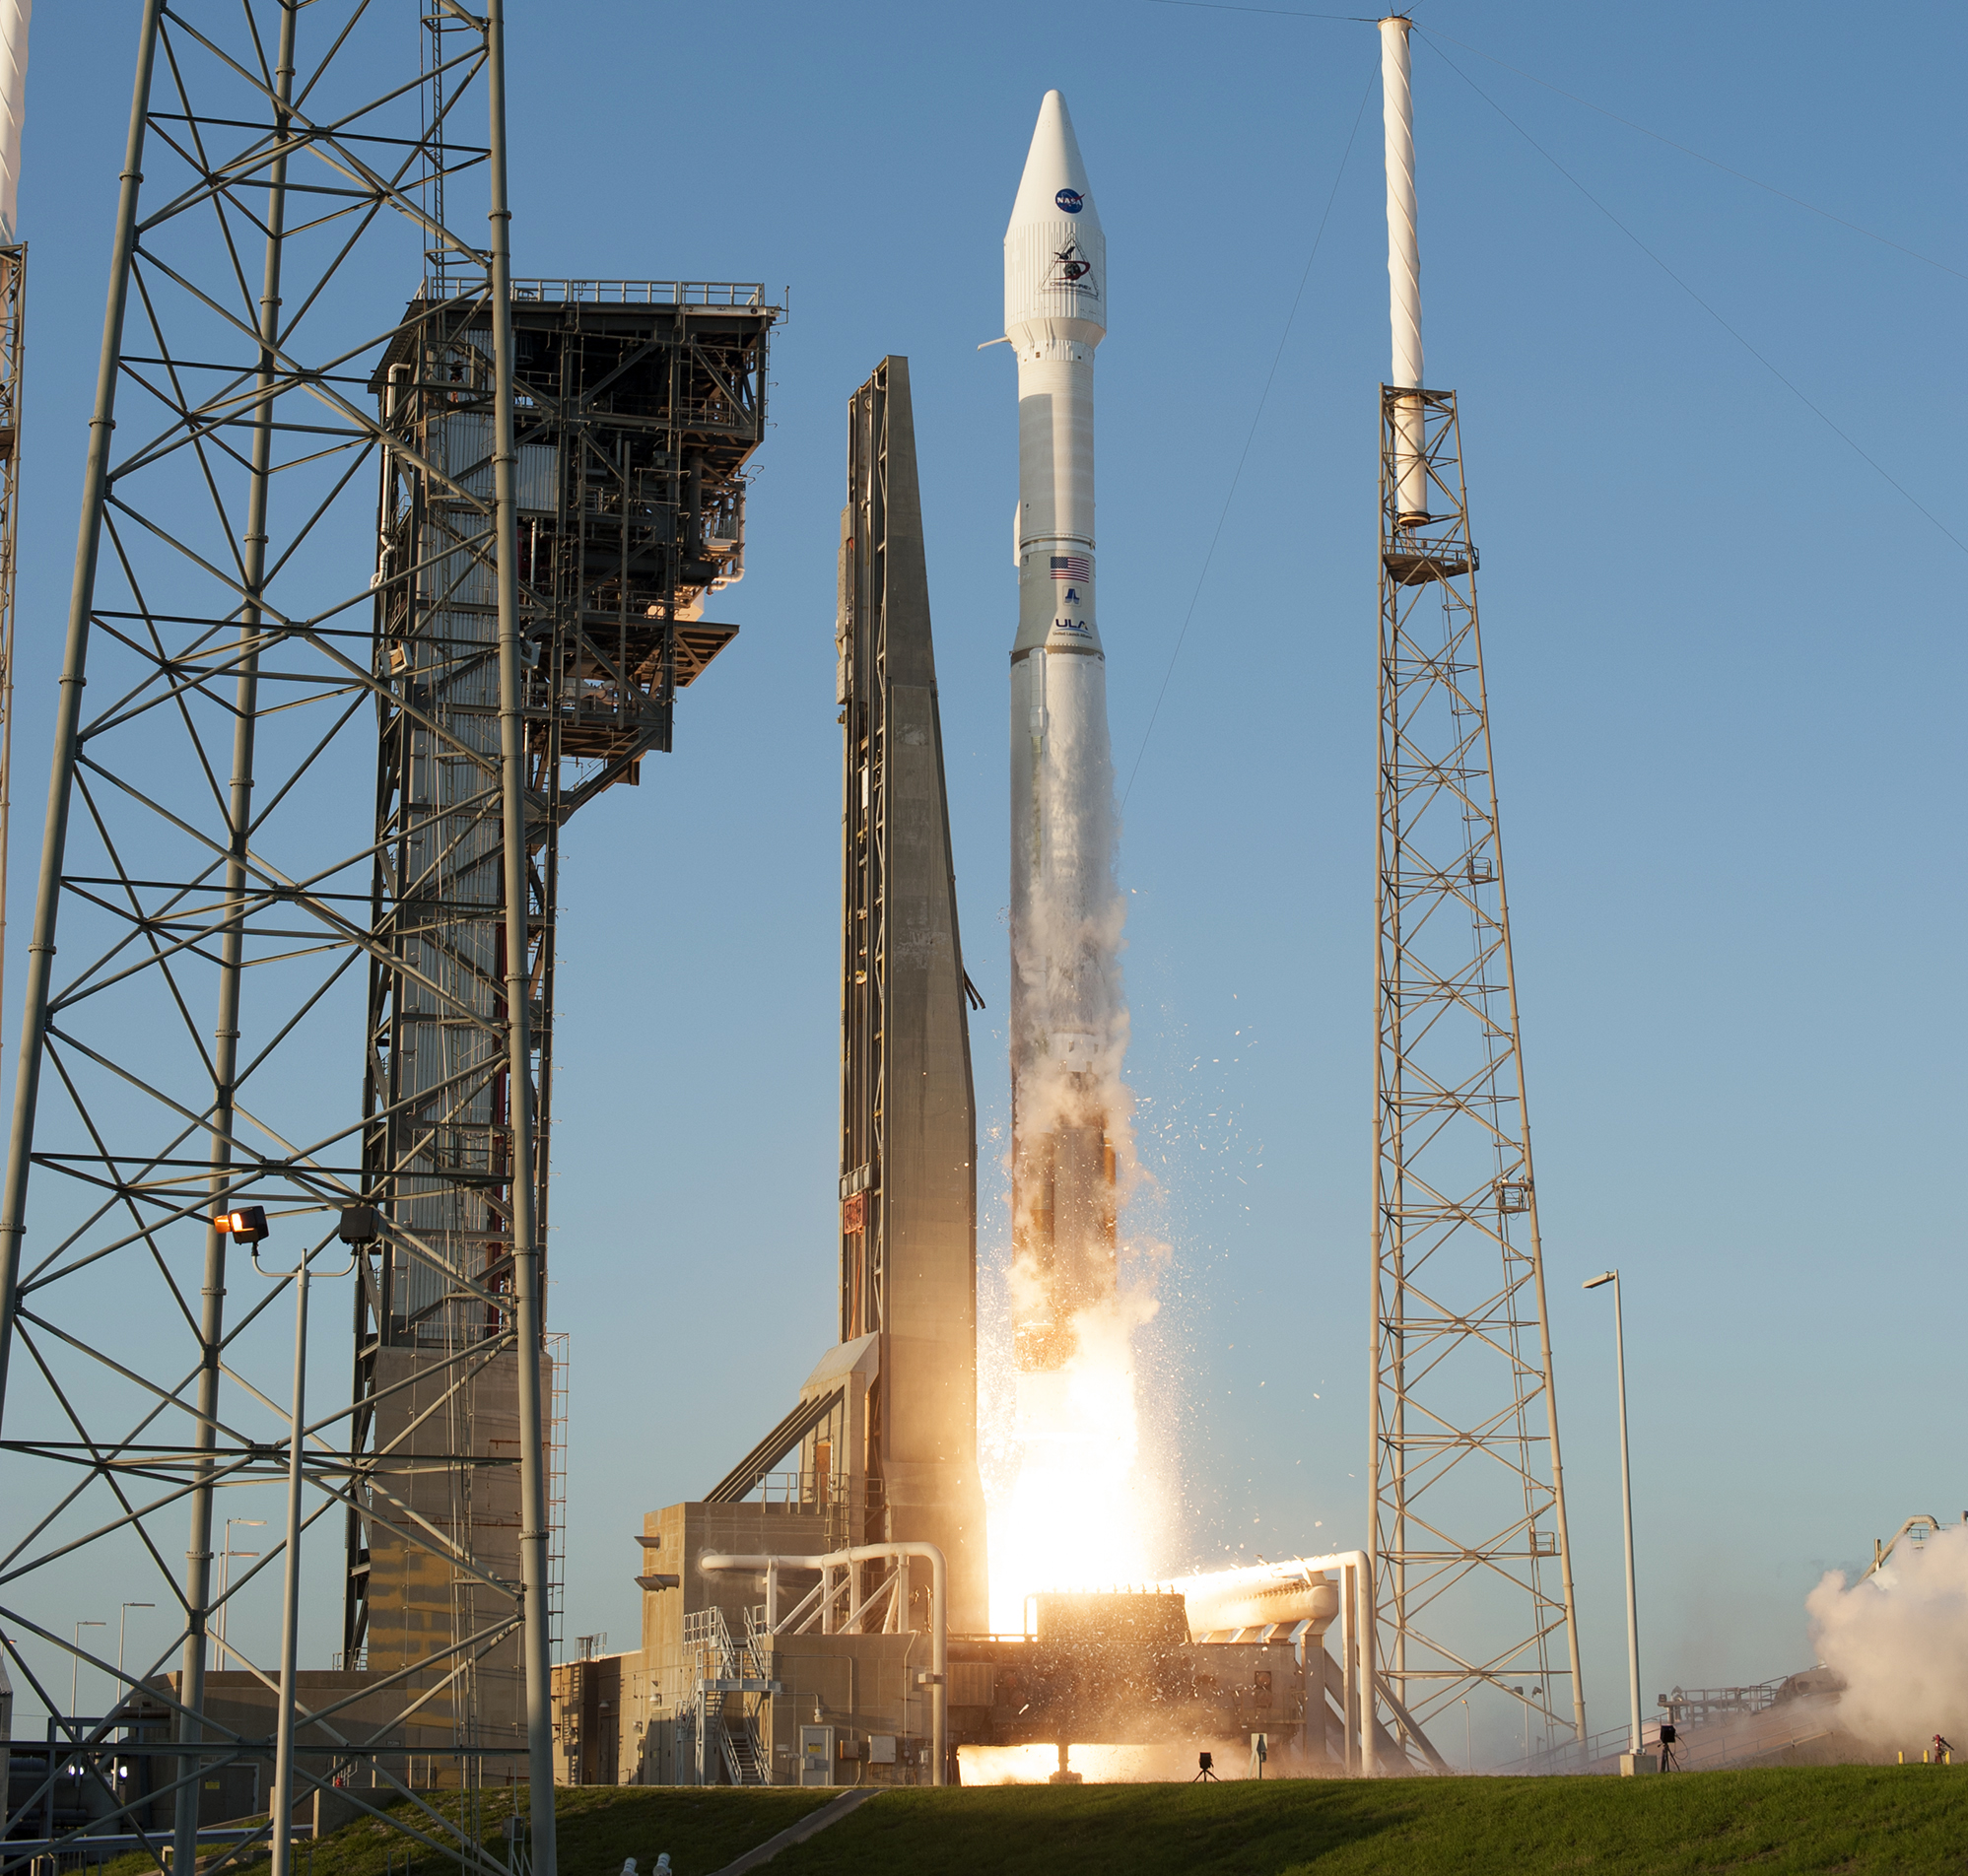 The OSIRIS-REx spacecraft began its journey to an asteroid on Sept. 8, when it lifted off from Cape Canaveral Air Force Station in Florida, atop an Atlas V rocket.